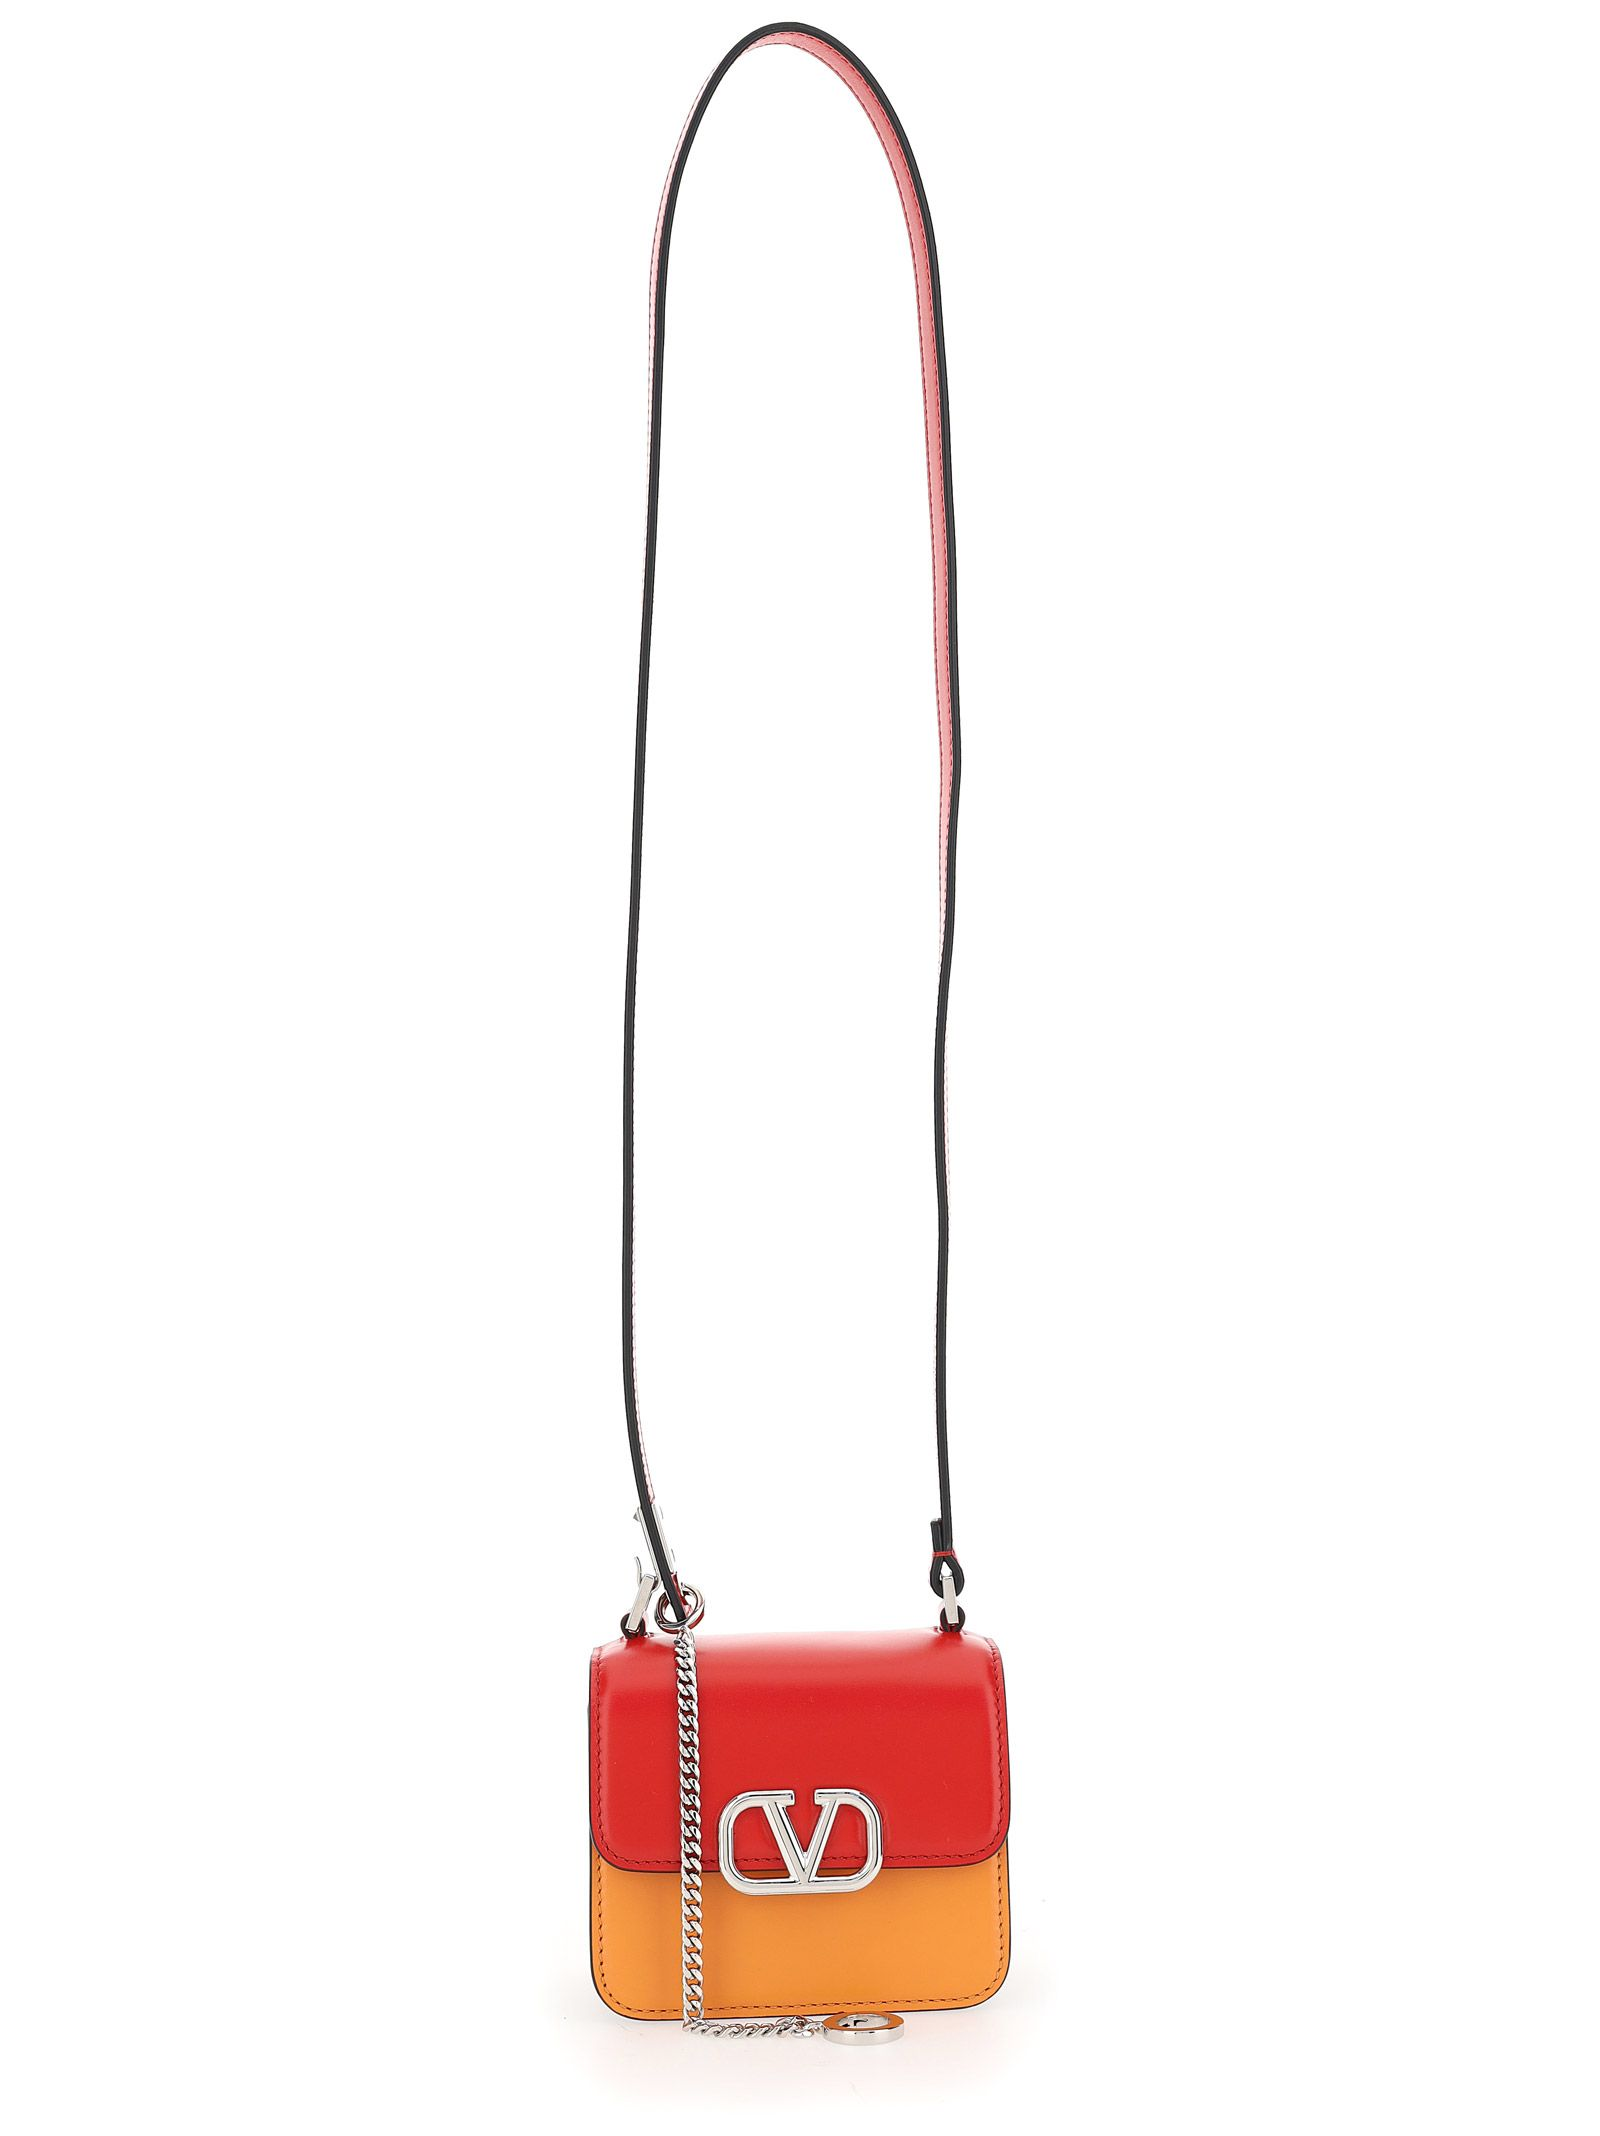 Valentino VALENTINO GARAVANI WOMEN'S RED OTHER MATERIALS SHOULDER BAG